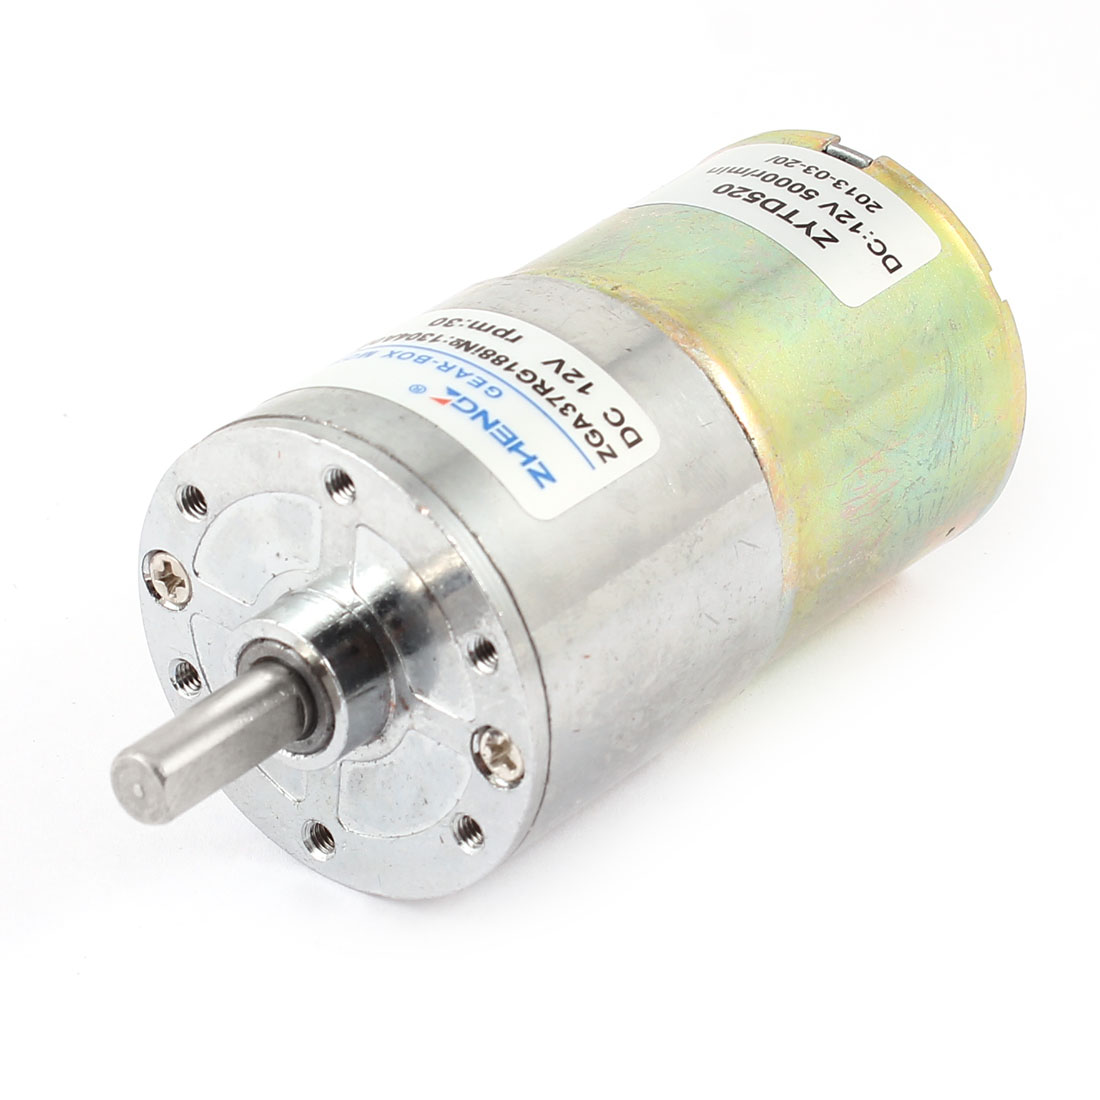 12V 6mm Diameter Shaft 2 Terminal 30RPM Electric Gearbox DC Gear Motor